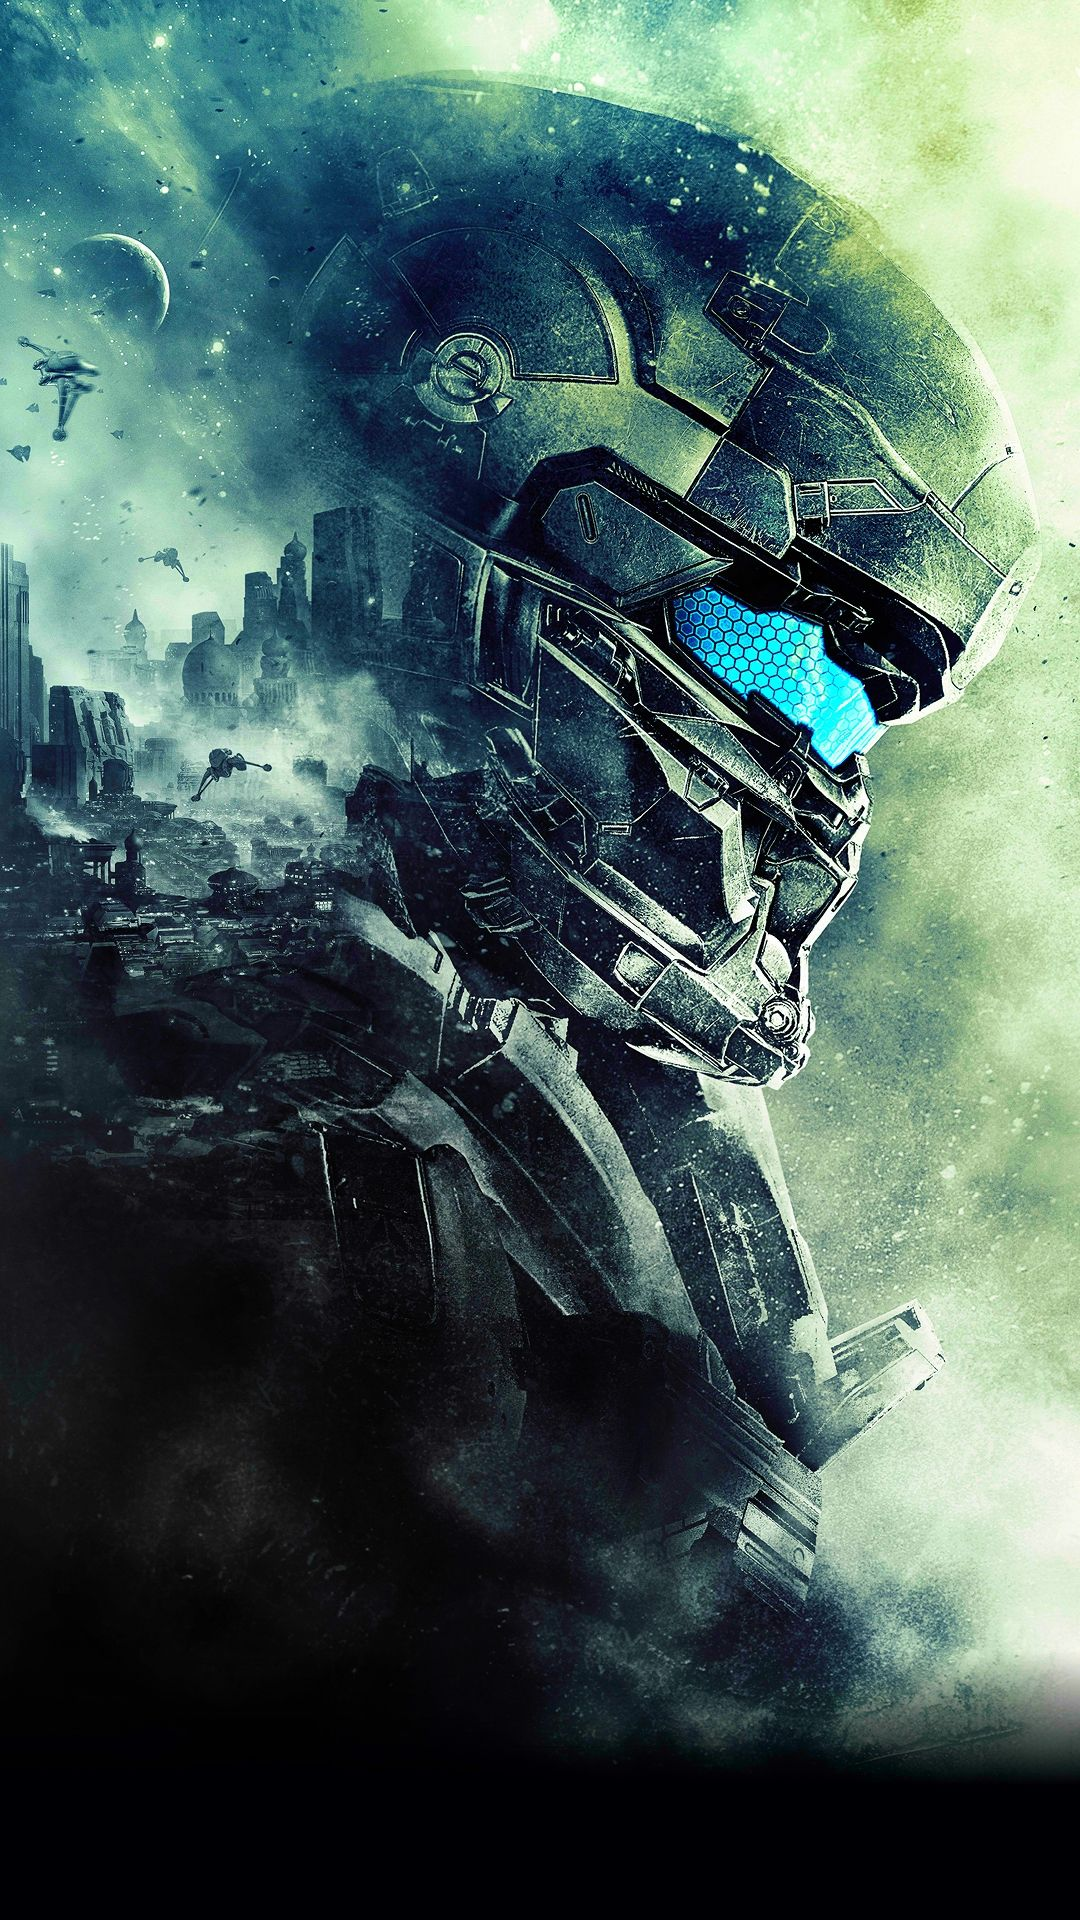 halo 5 spartan locke | Tumblr | wallpapers | Pinterest | Duele ...